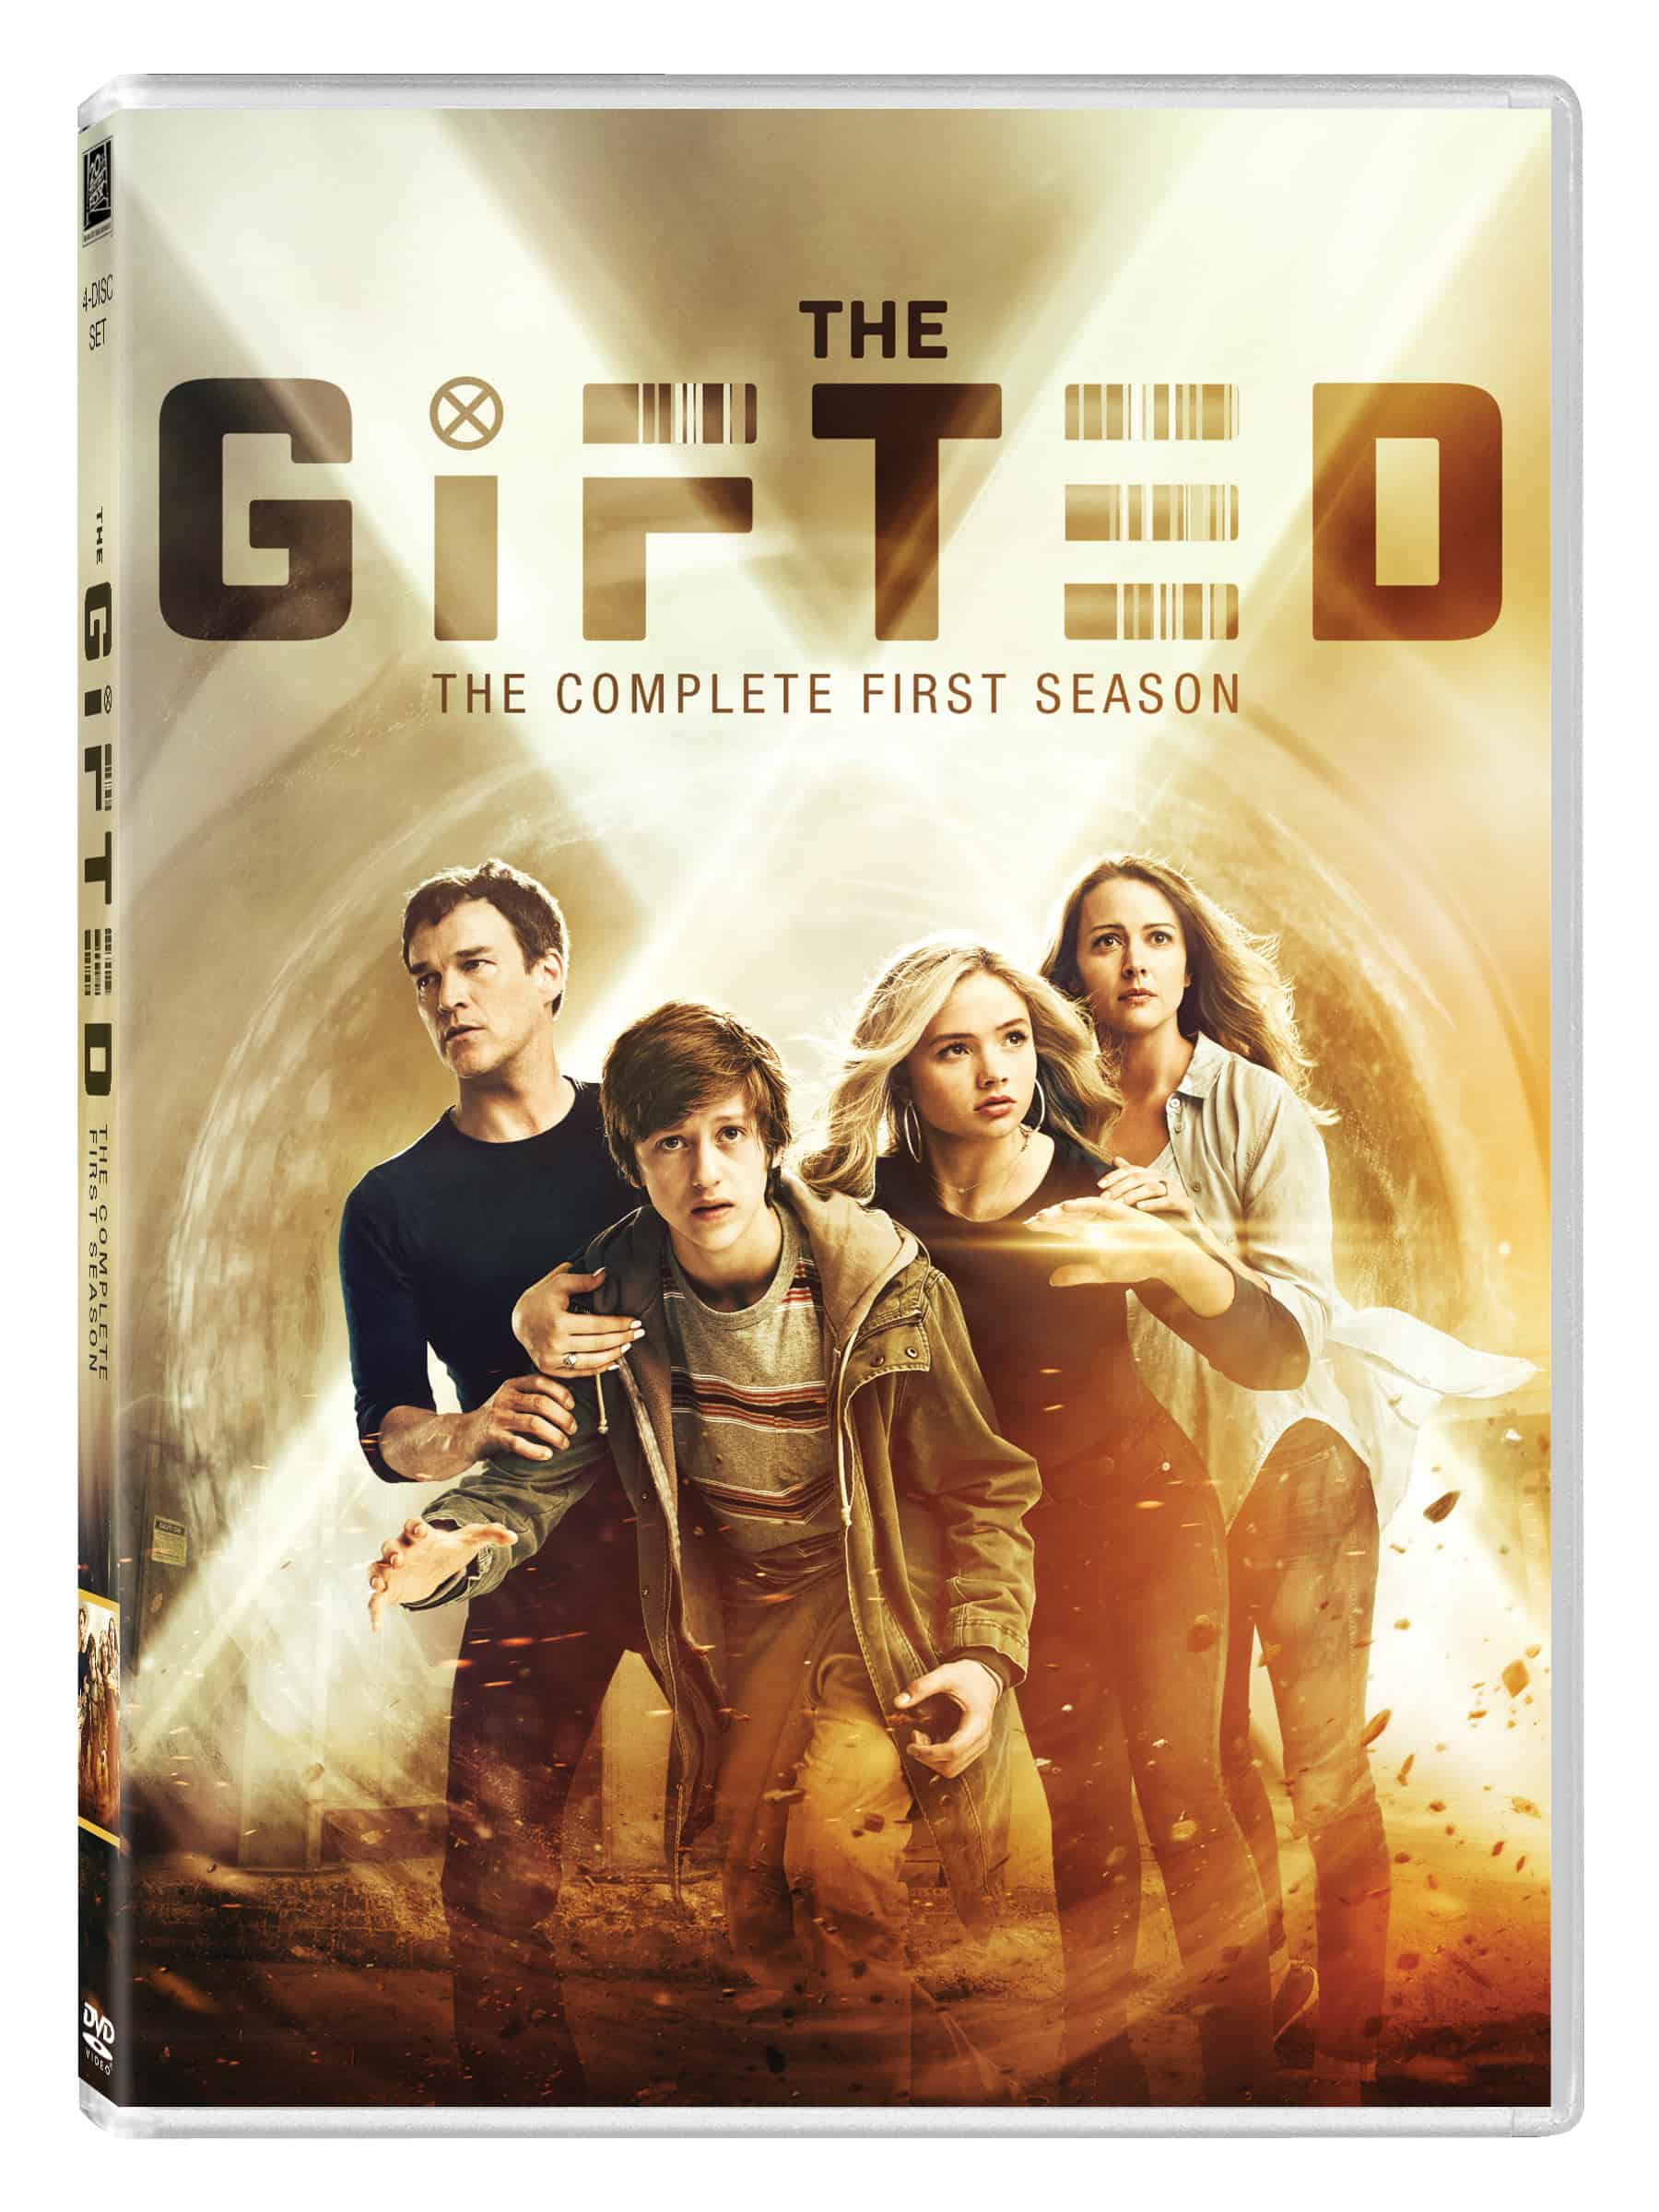 The Gifted Season 1 Now Available on DVD